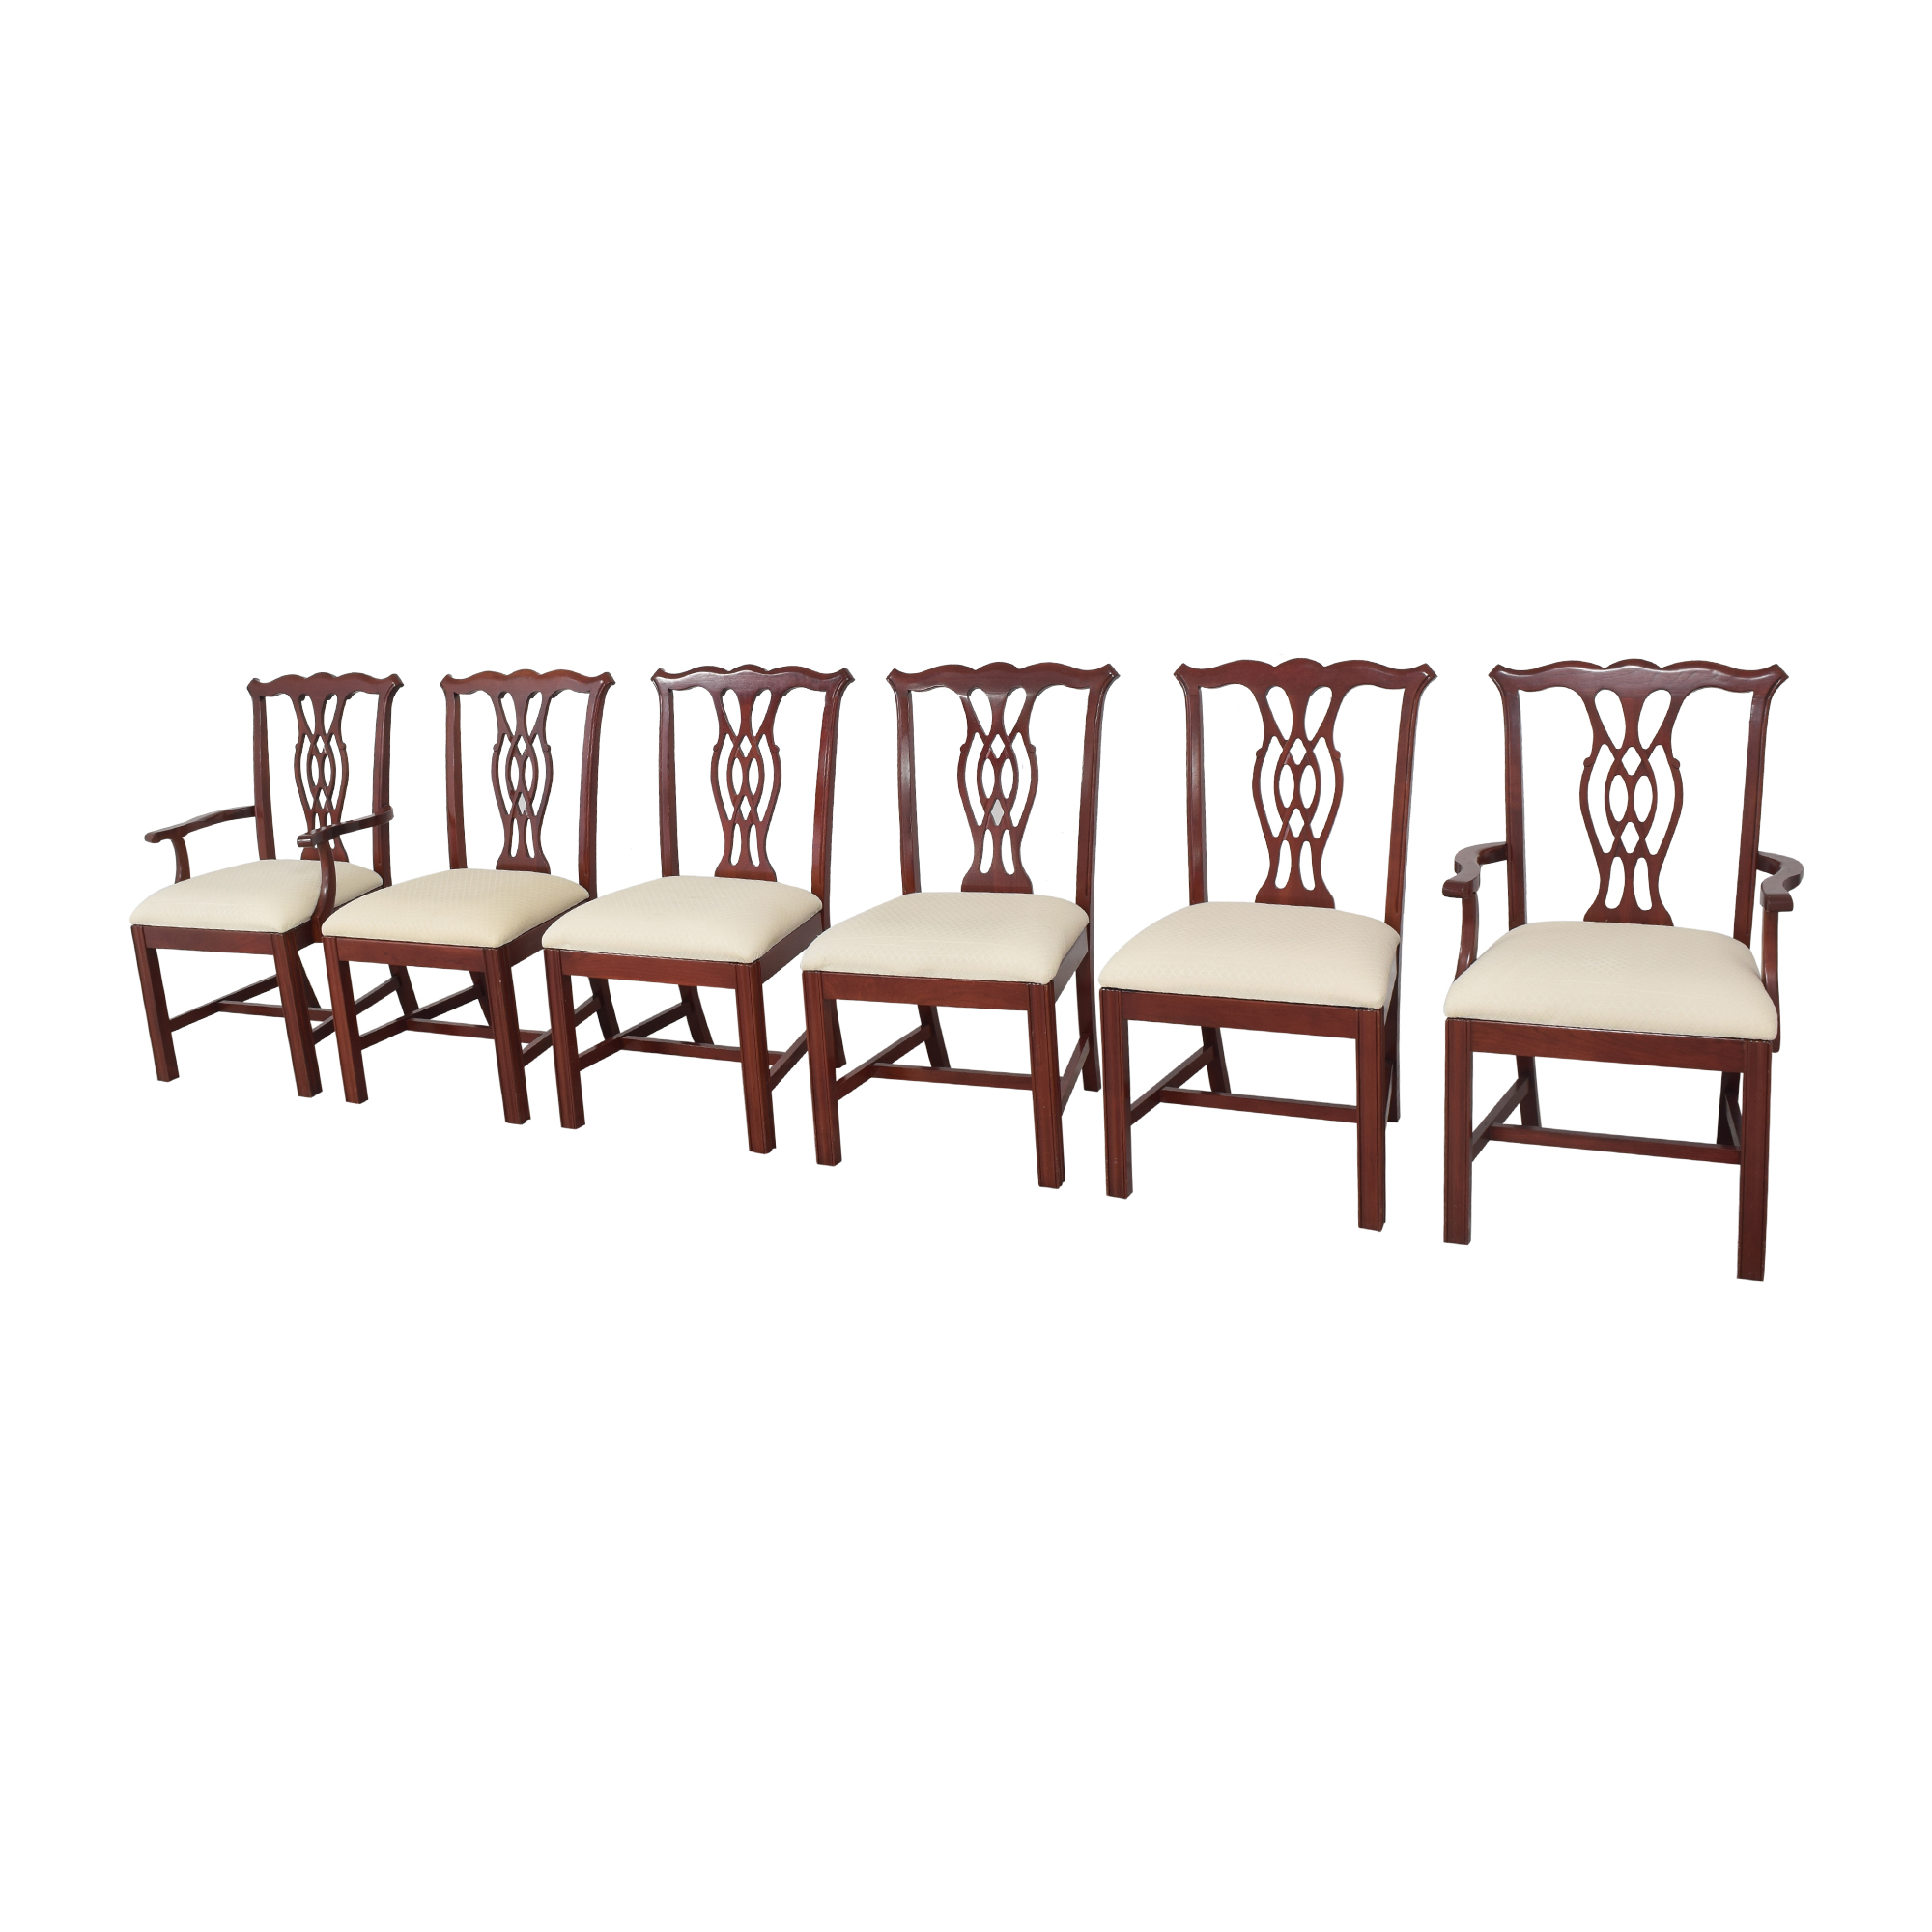 The Colonial Furniture Company The Colonial Furniture Company Chippendale-Style Dining Chairs